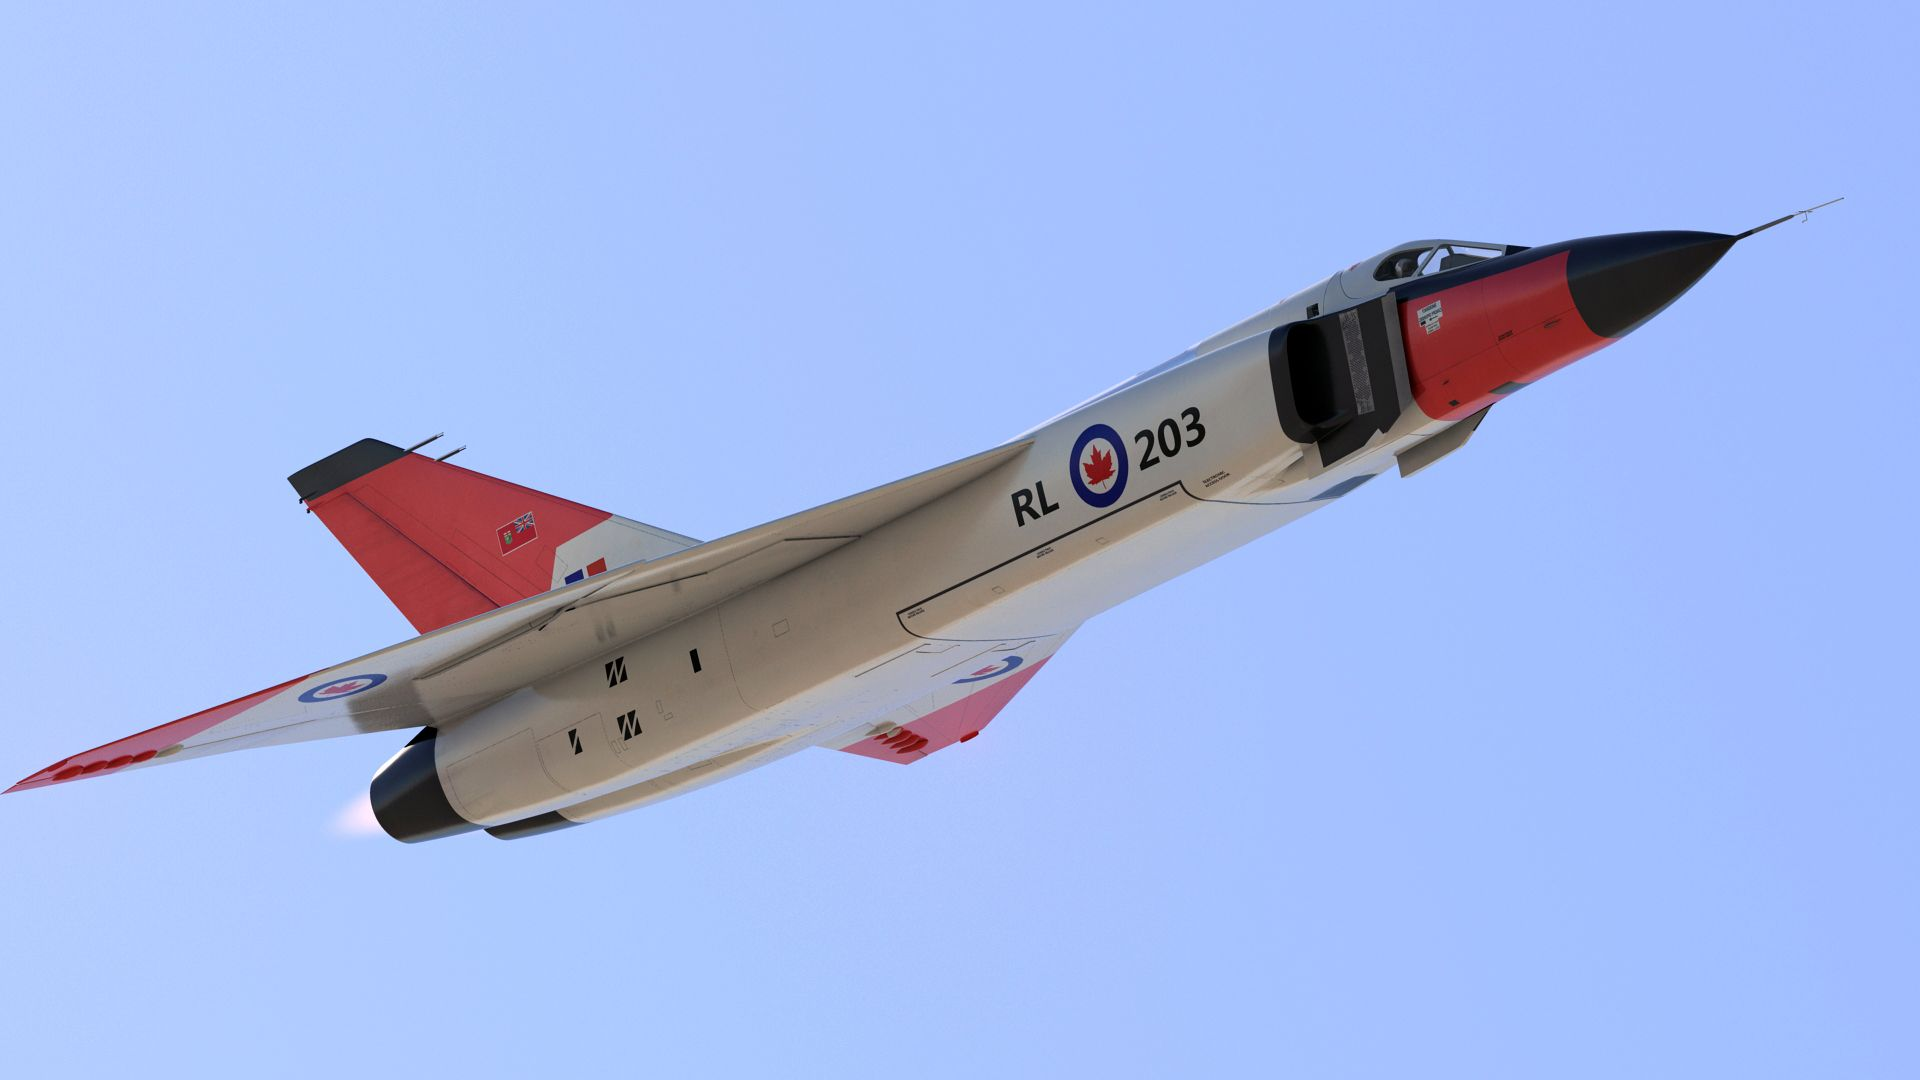 Avro Arrow Avro Arrow Fighter Planes Fighter Jets